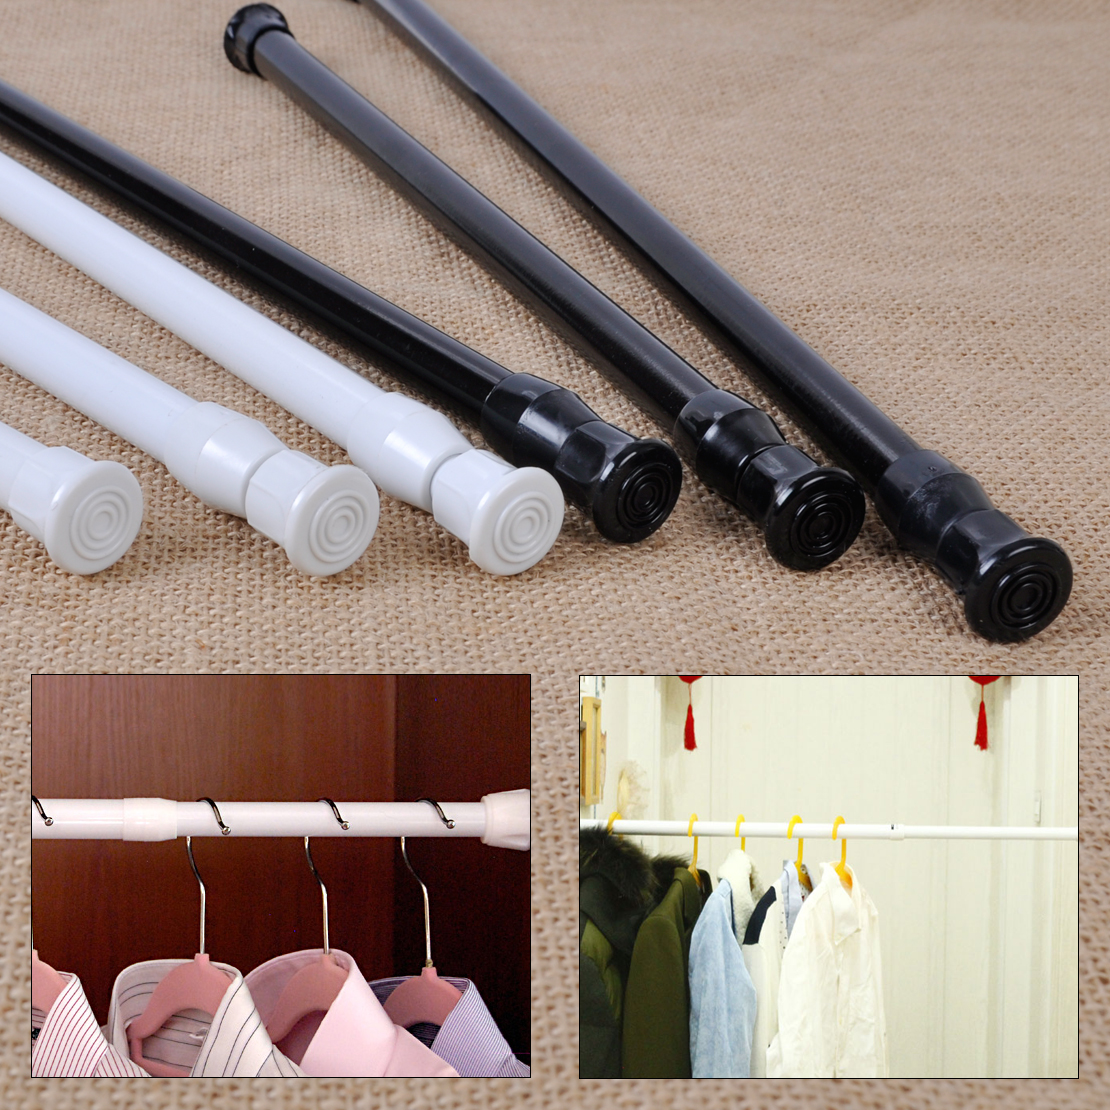 steel tension rod window bathroom curtain extensible rod hange ebay